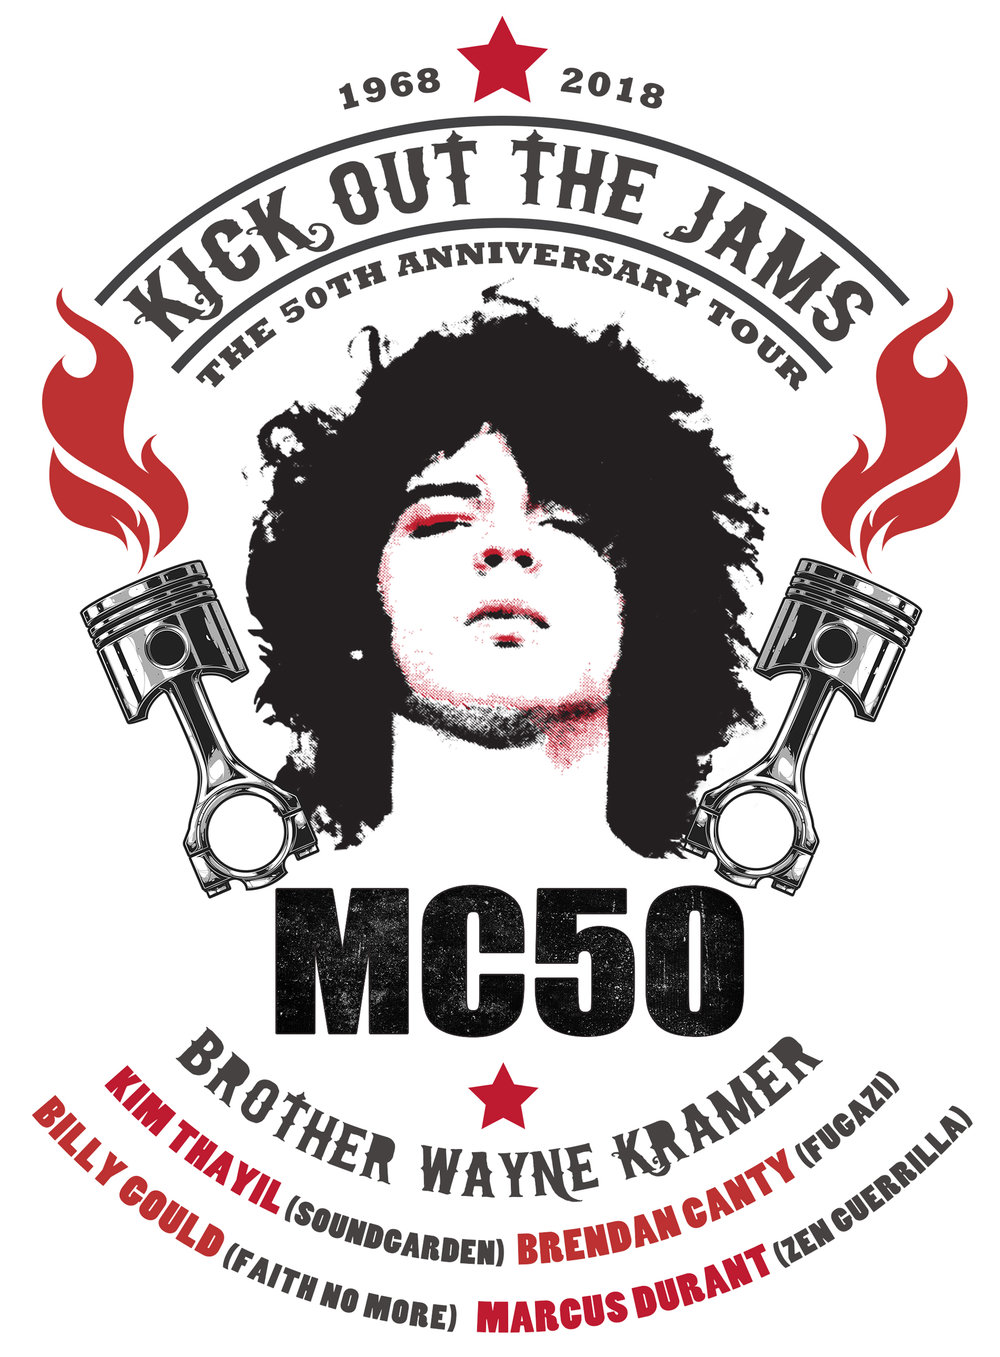 MC50 will be performing at Revolution Live on September 5th -  BUY TICKETS HERE